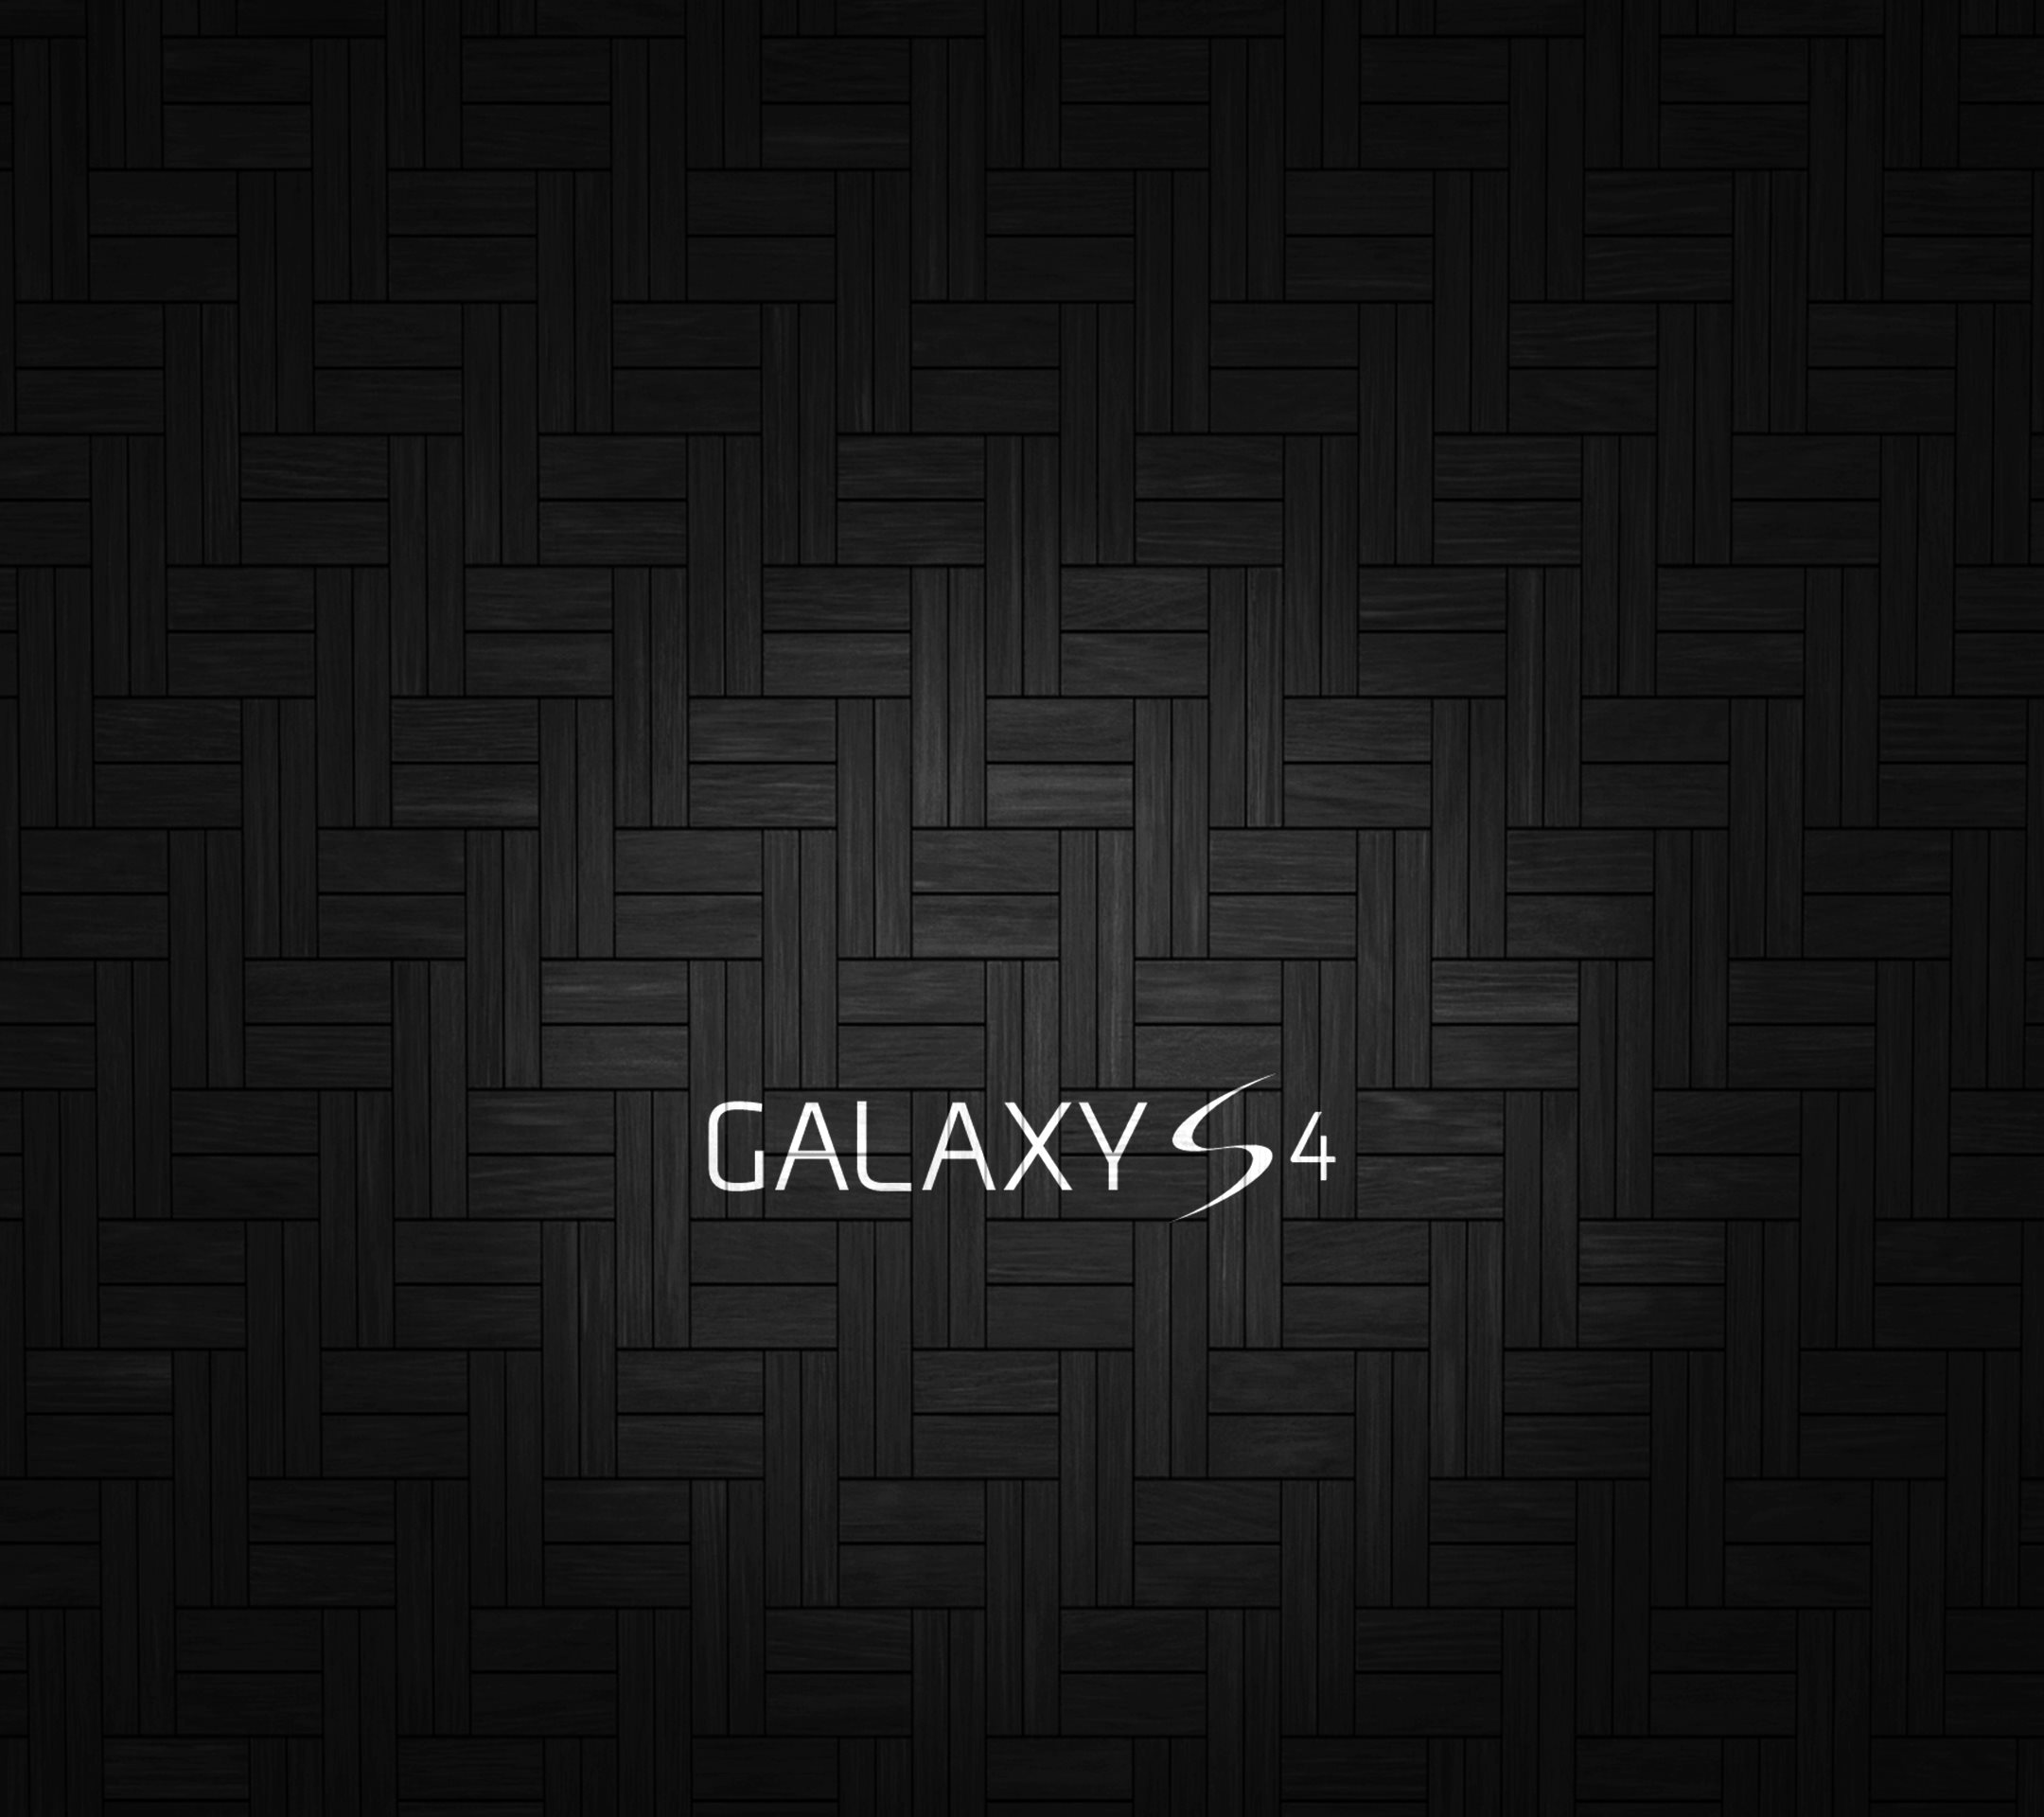 S4 (720x1280-Wallpapers)